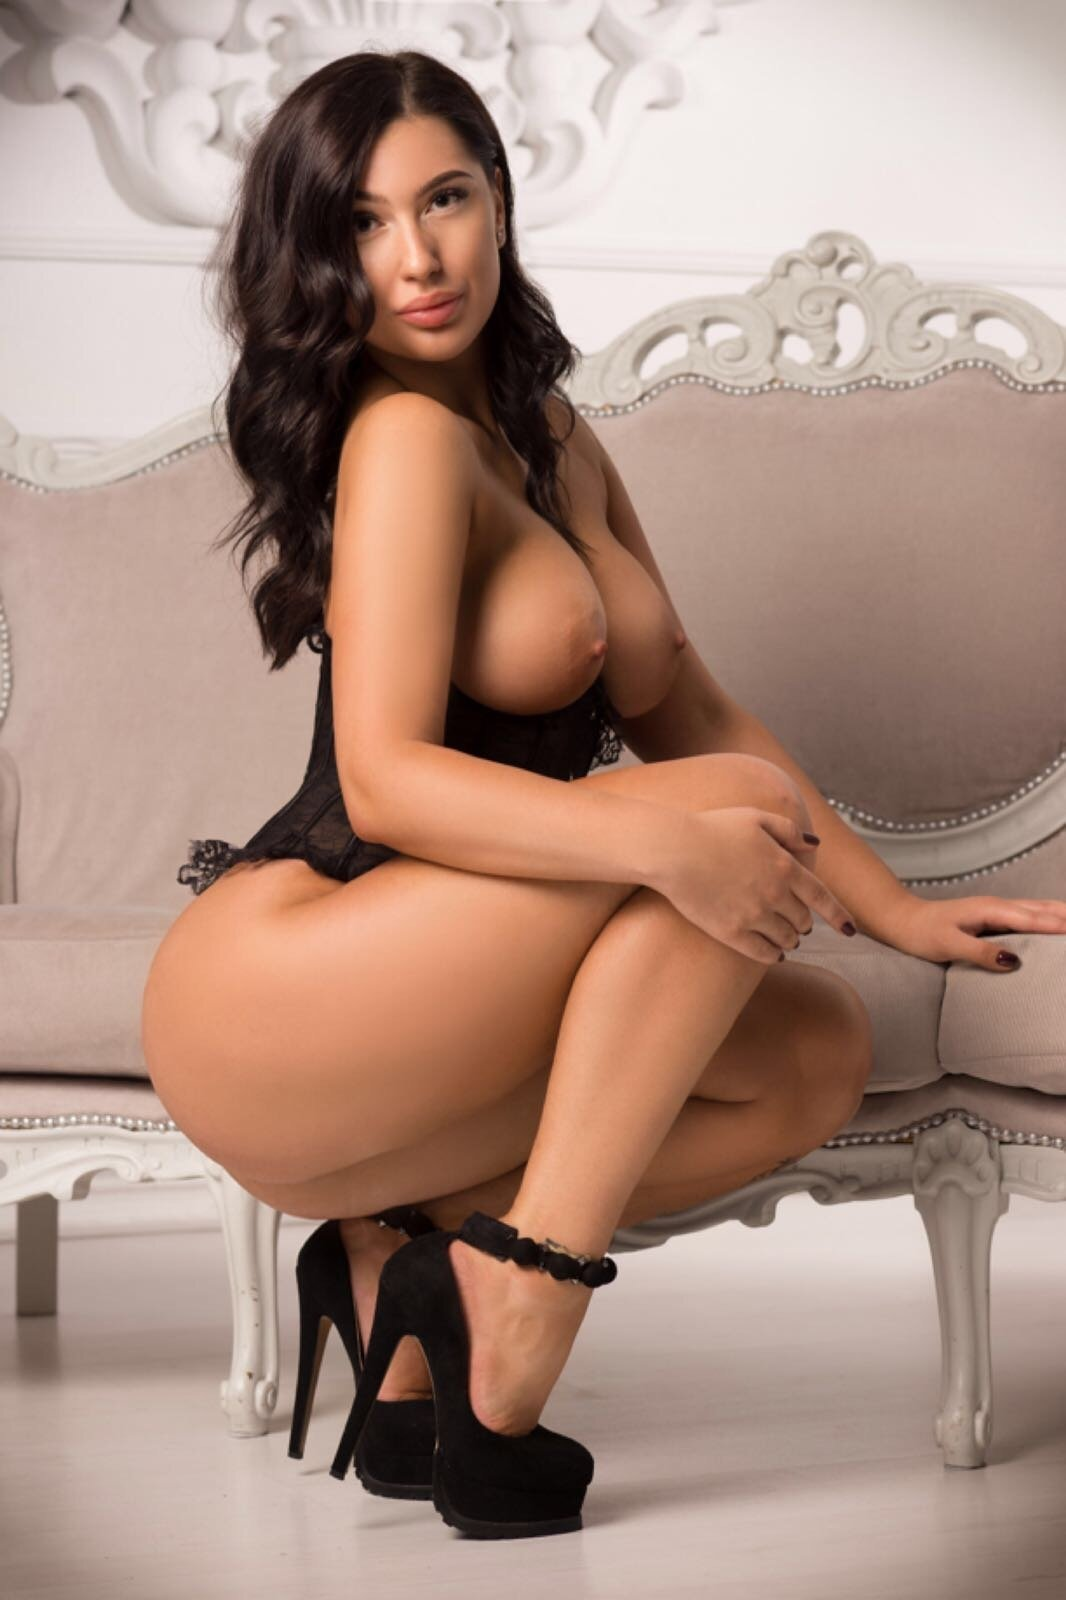 Bigbreasted escorts Busty escorts • : Find independent escorts